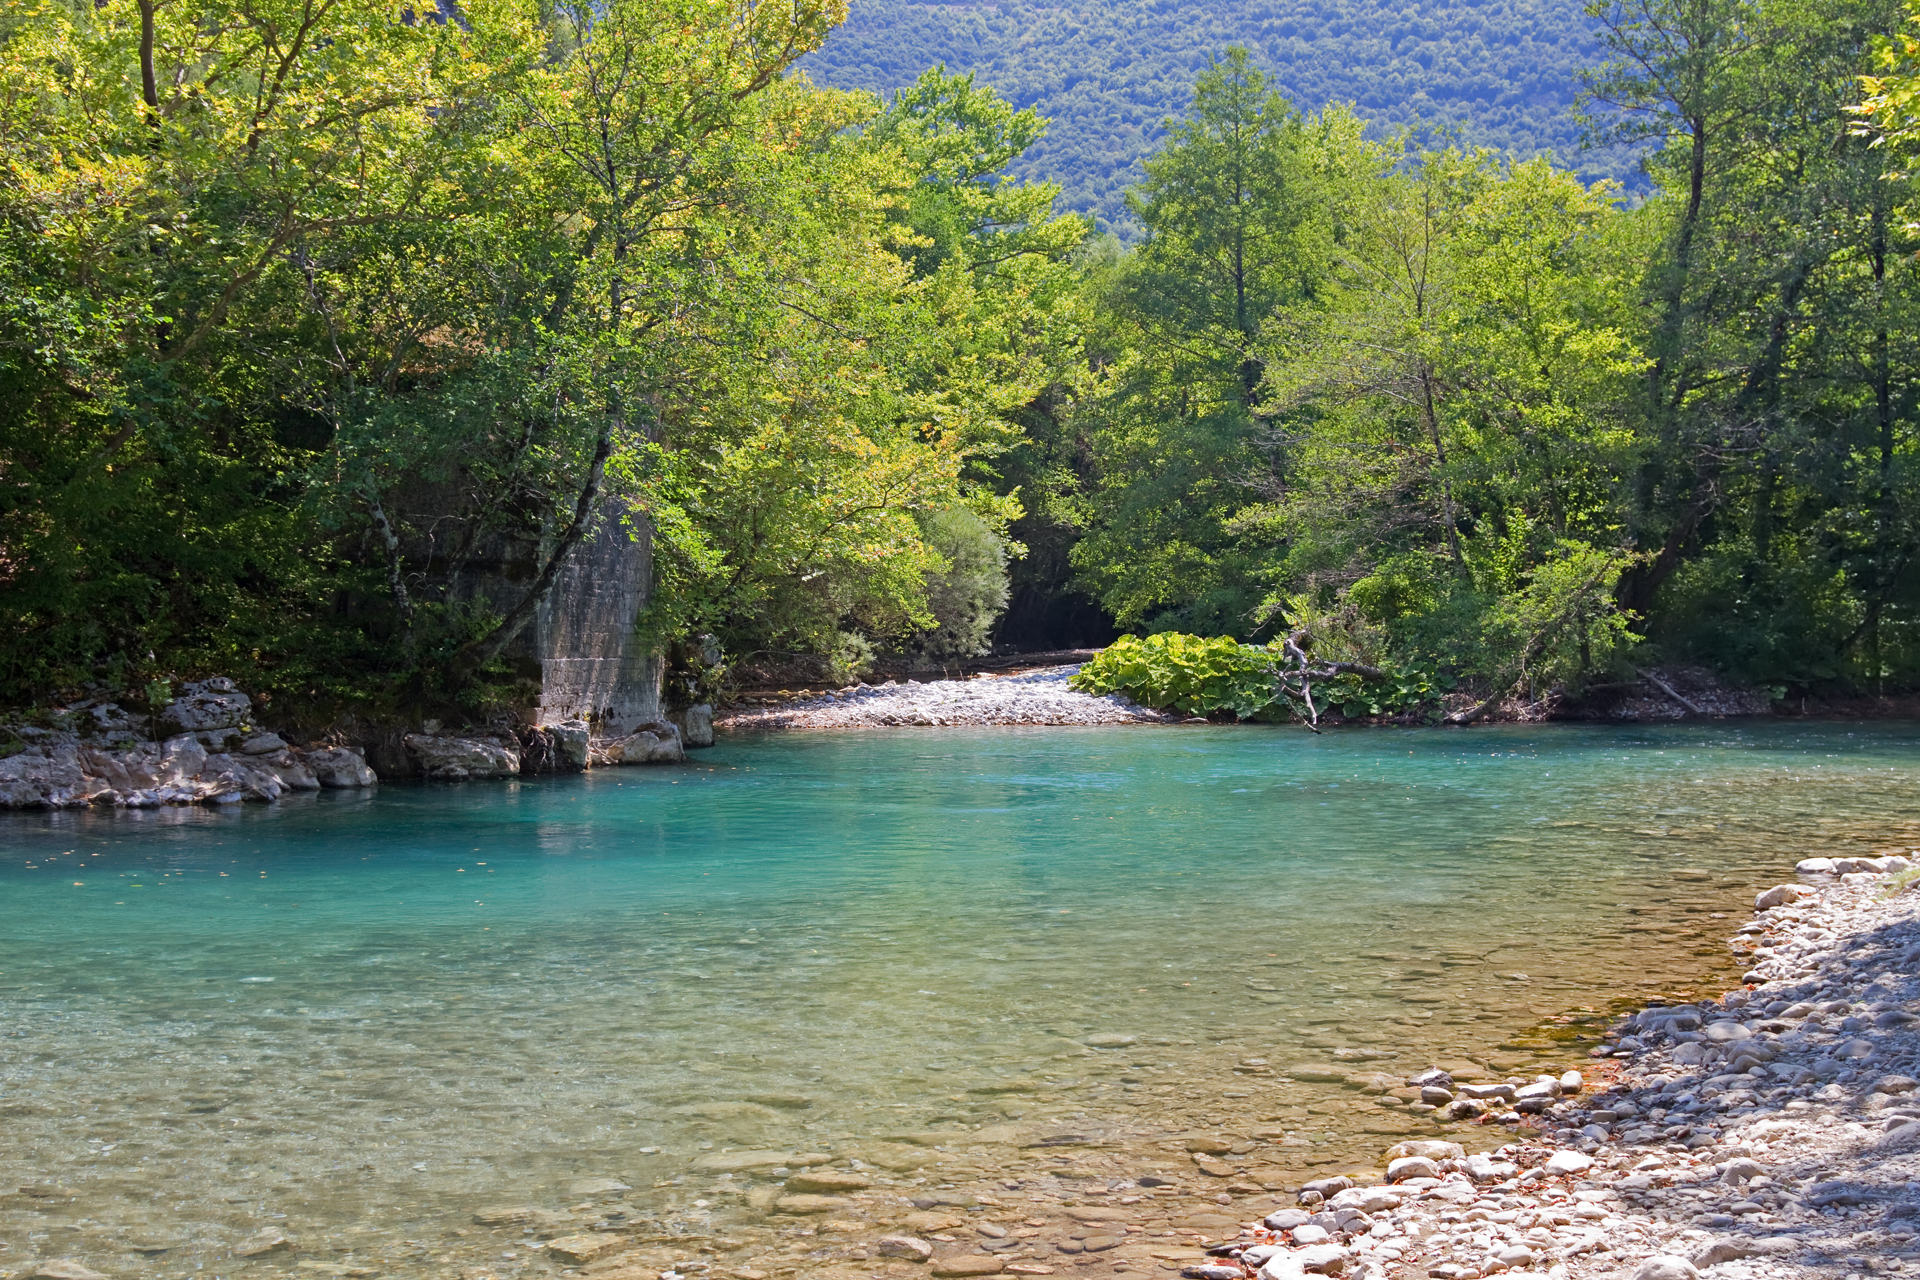 The blue waters of Voidomatis river that flows through Epirus region, Greece